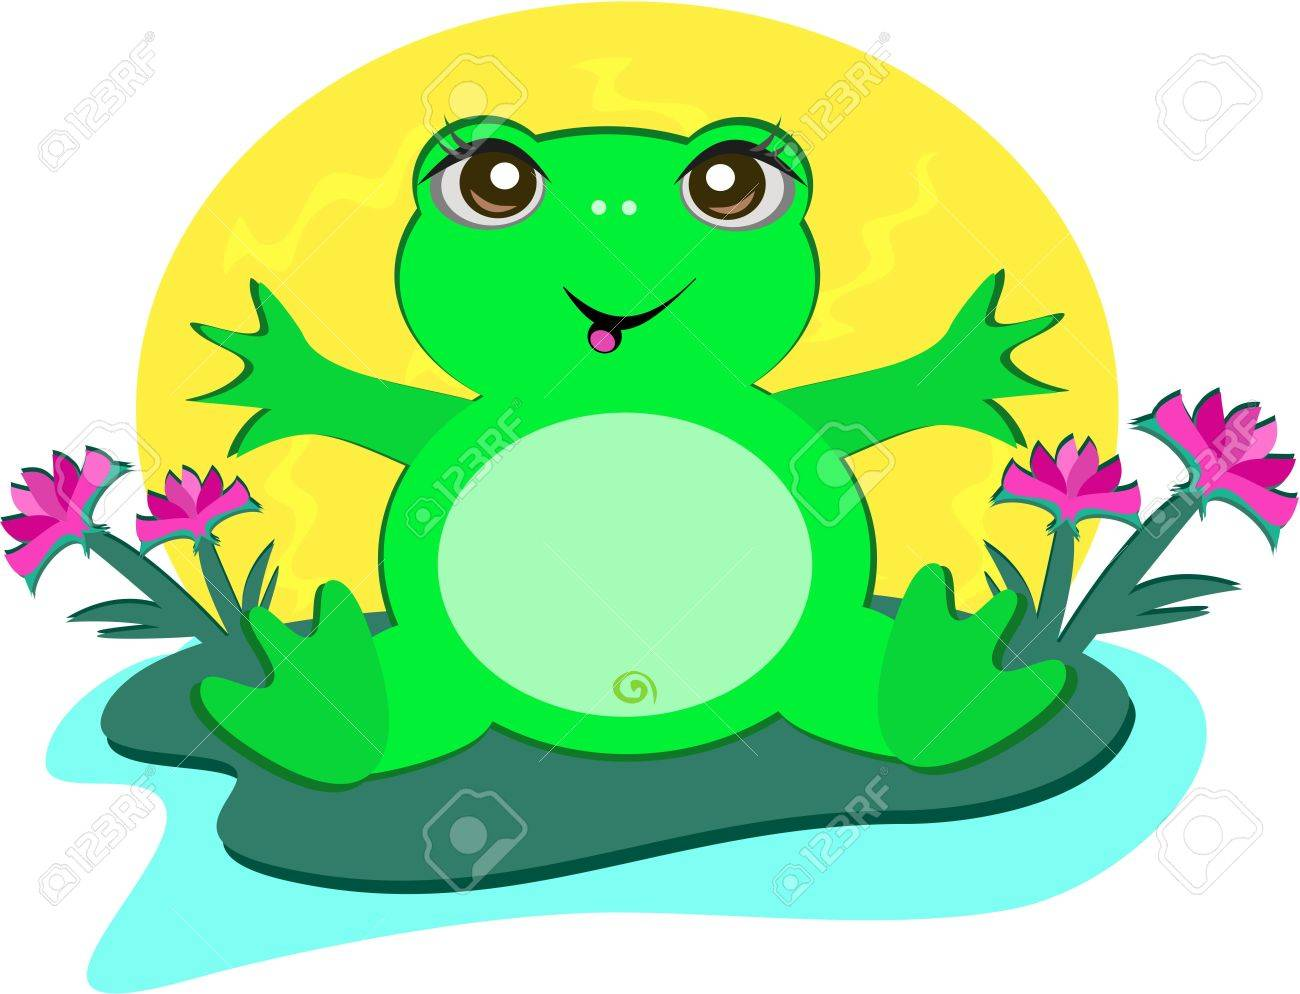 frog with peace lotus flowers royalty free cliparts vectors and rh 123rf com Frog Prince Frog Silhouette